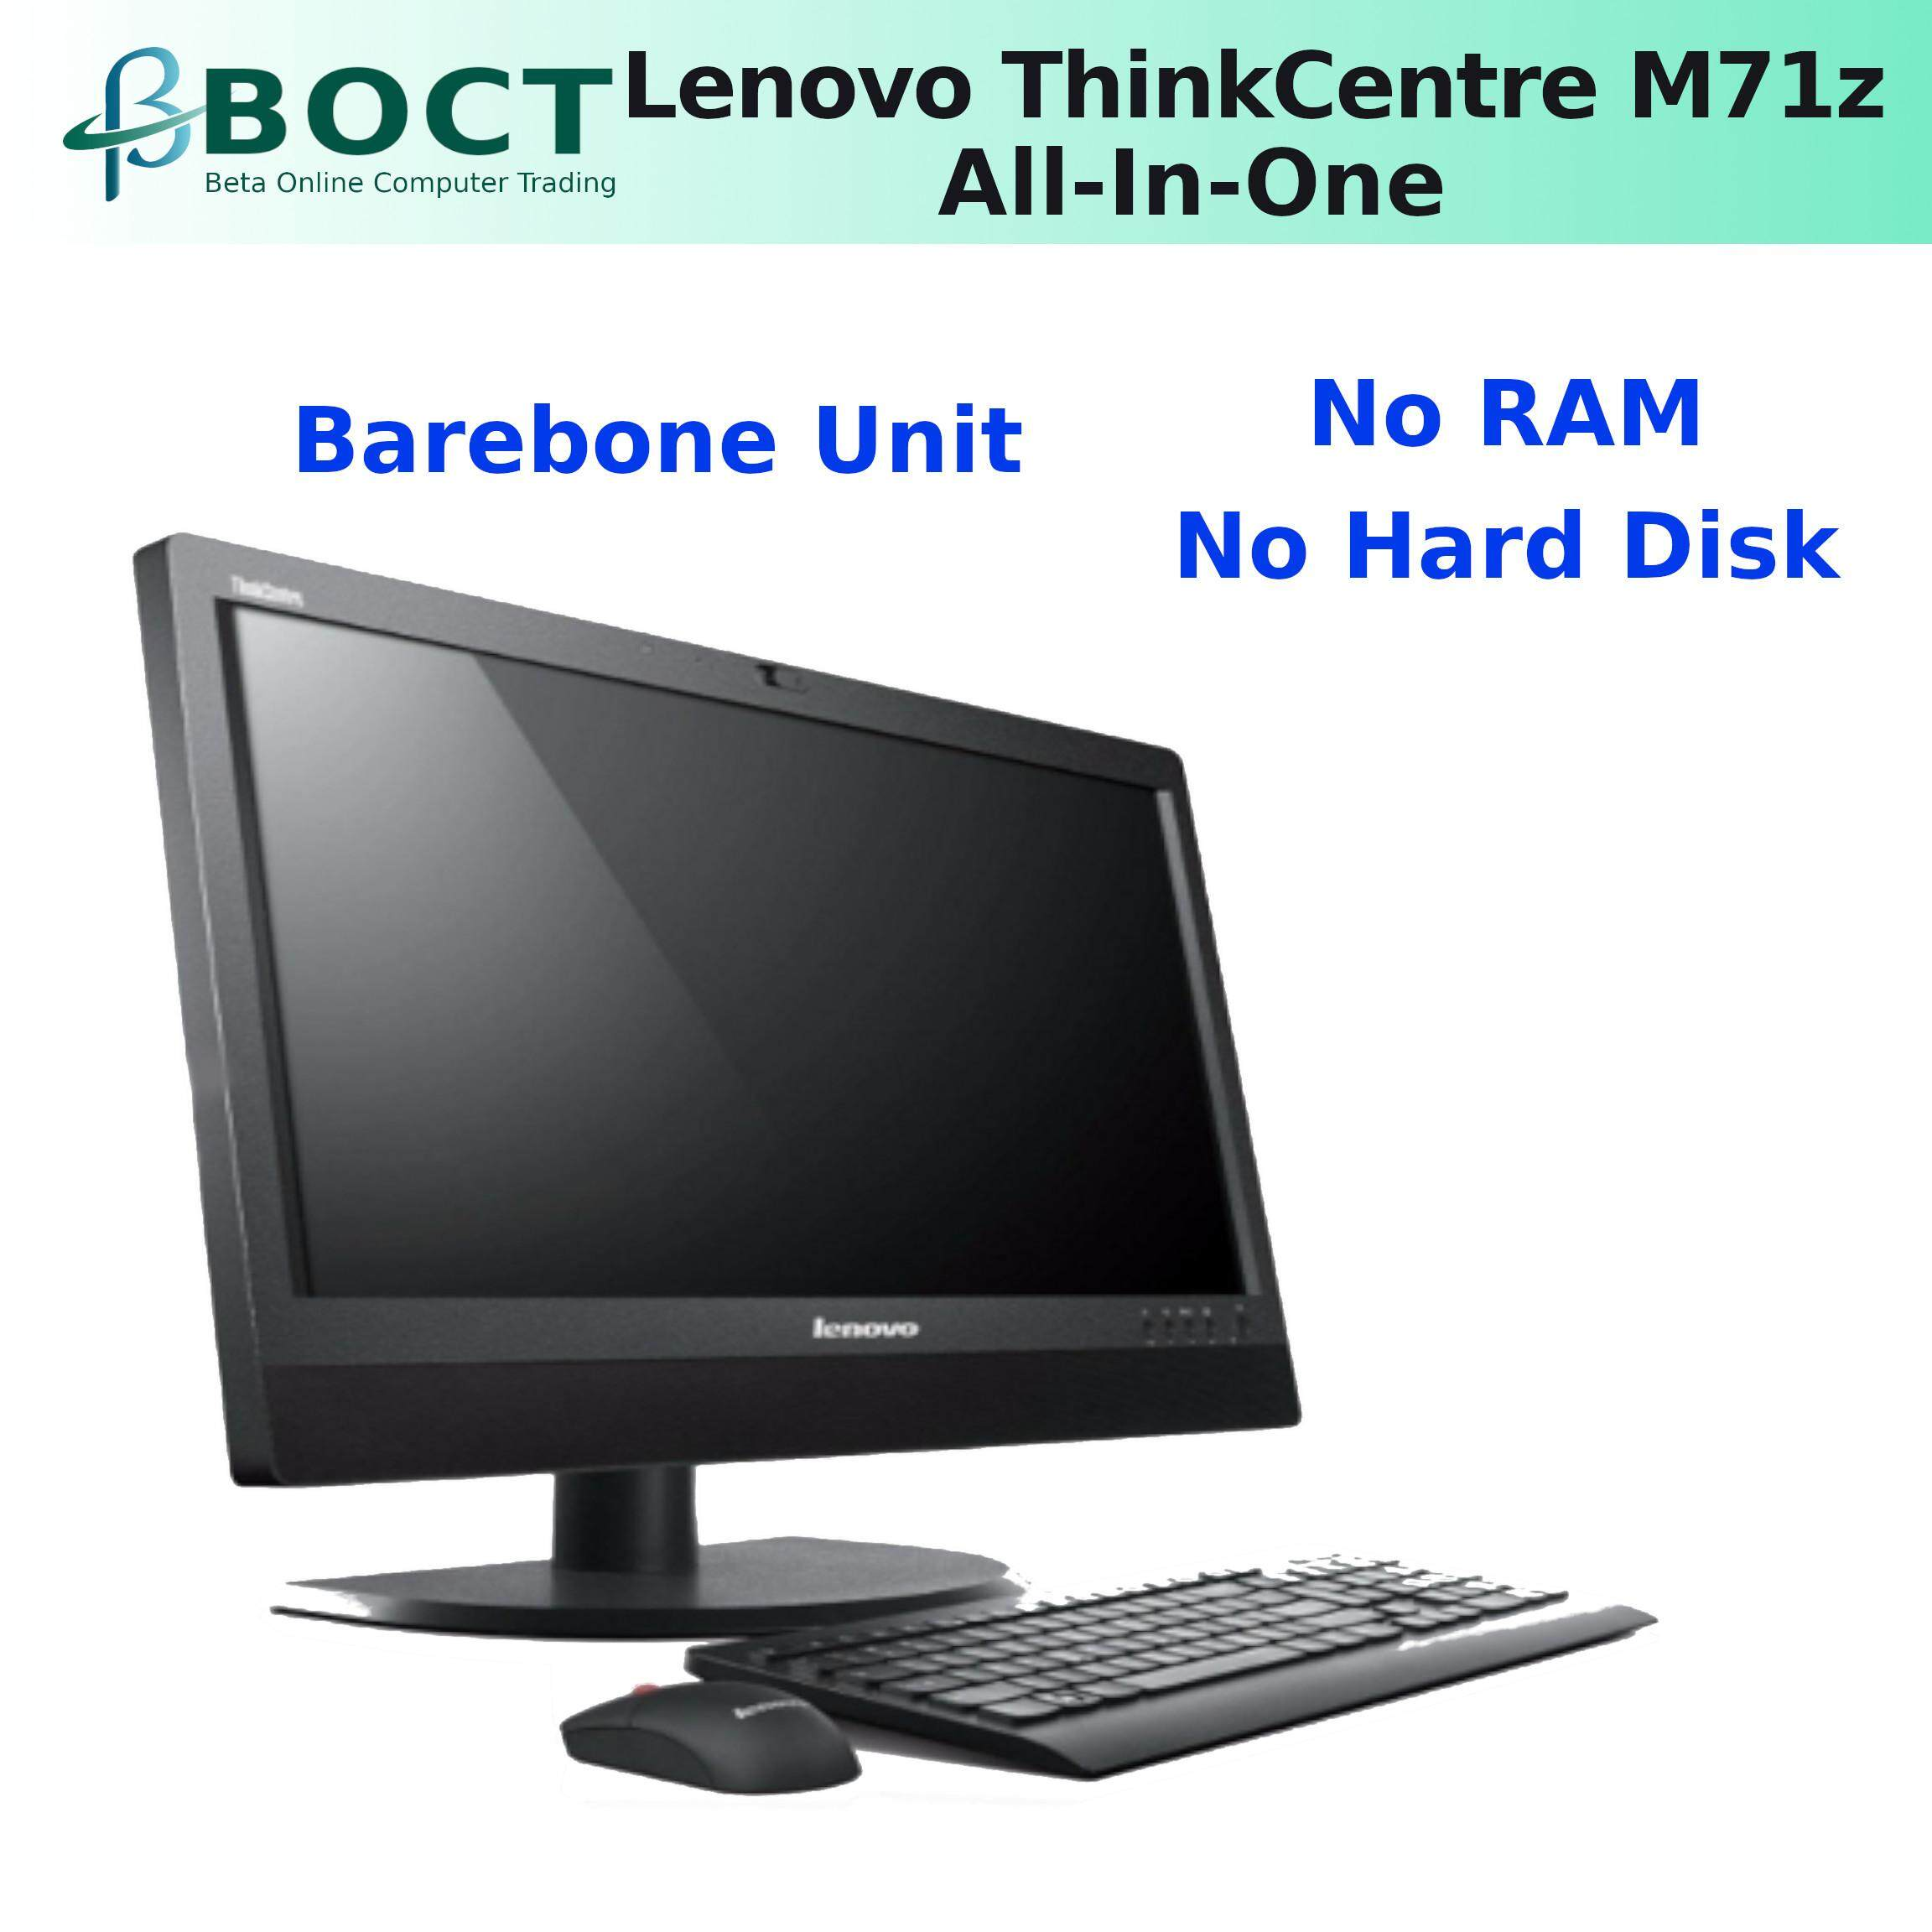 Refurbished Lenovo ThinkCentre M71z All-in-One PC Pentium Dual Core G850  2 9GHz/ 4GB/ 120GB SSD / Win 7 Home